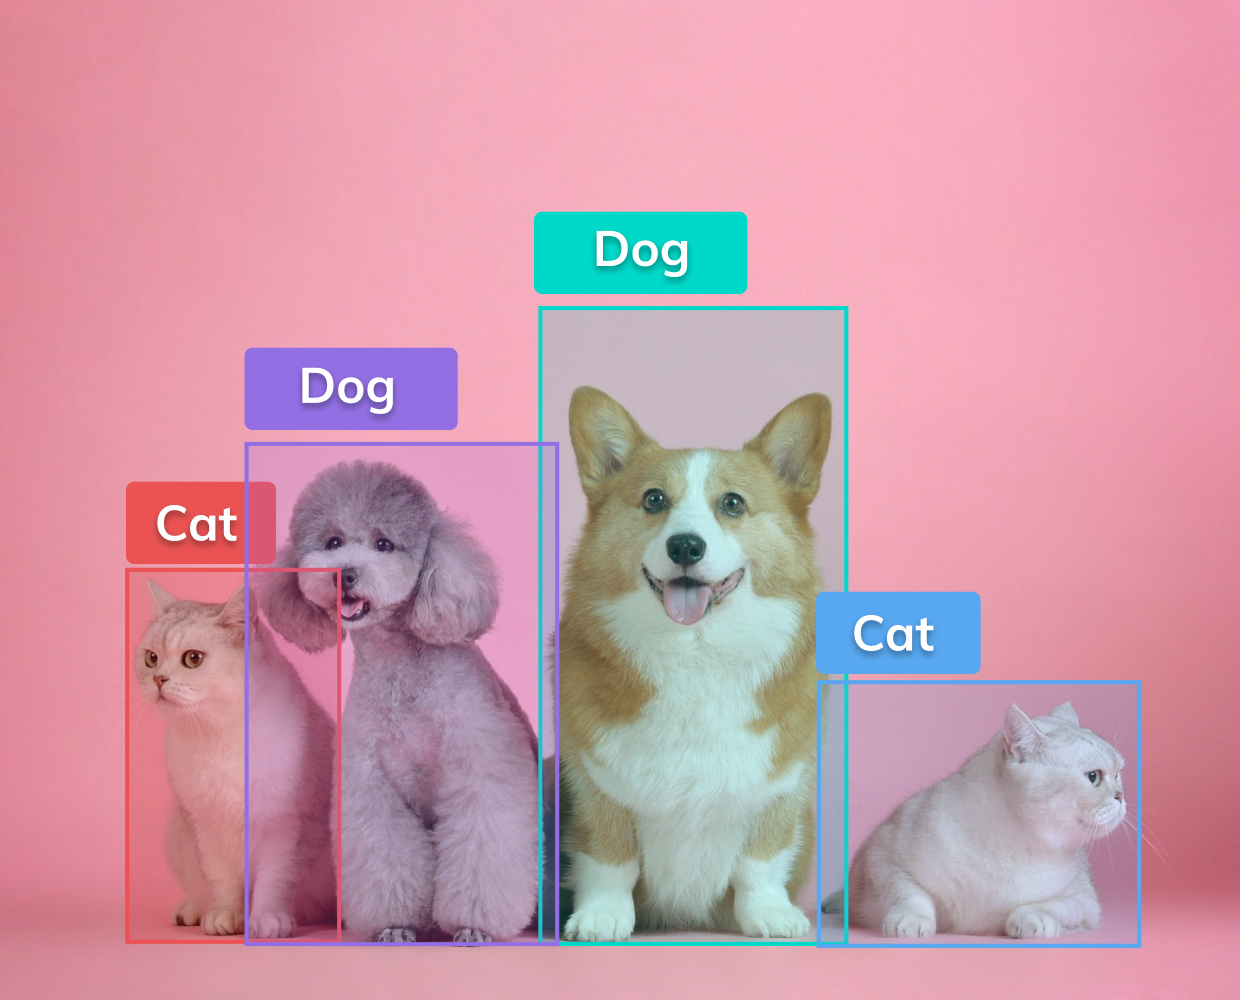 Object detection with V7